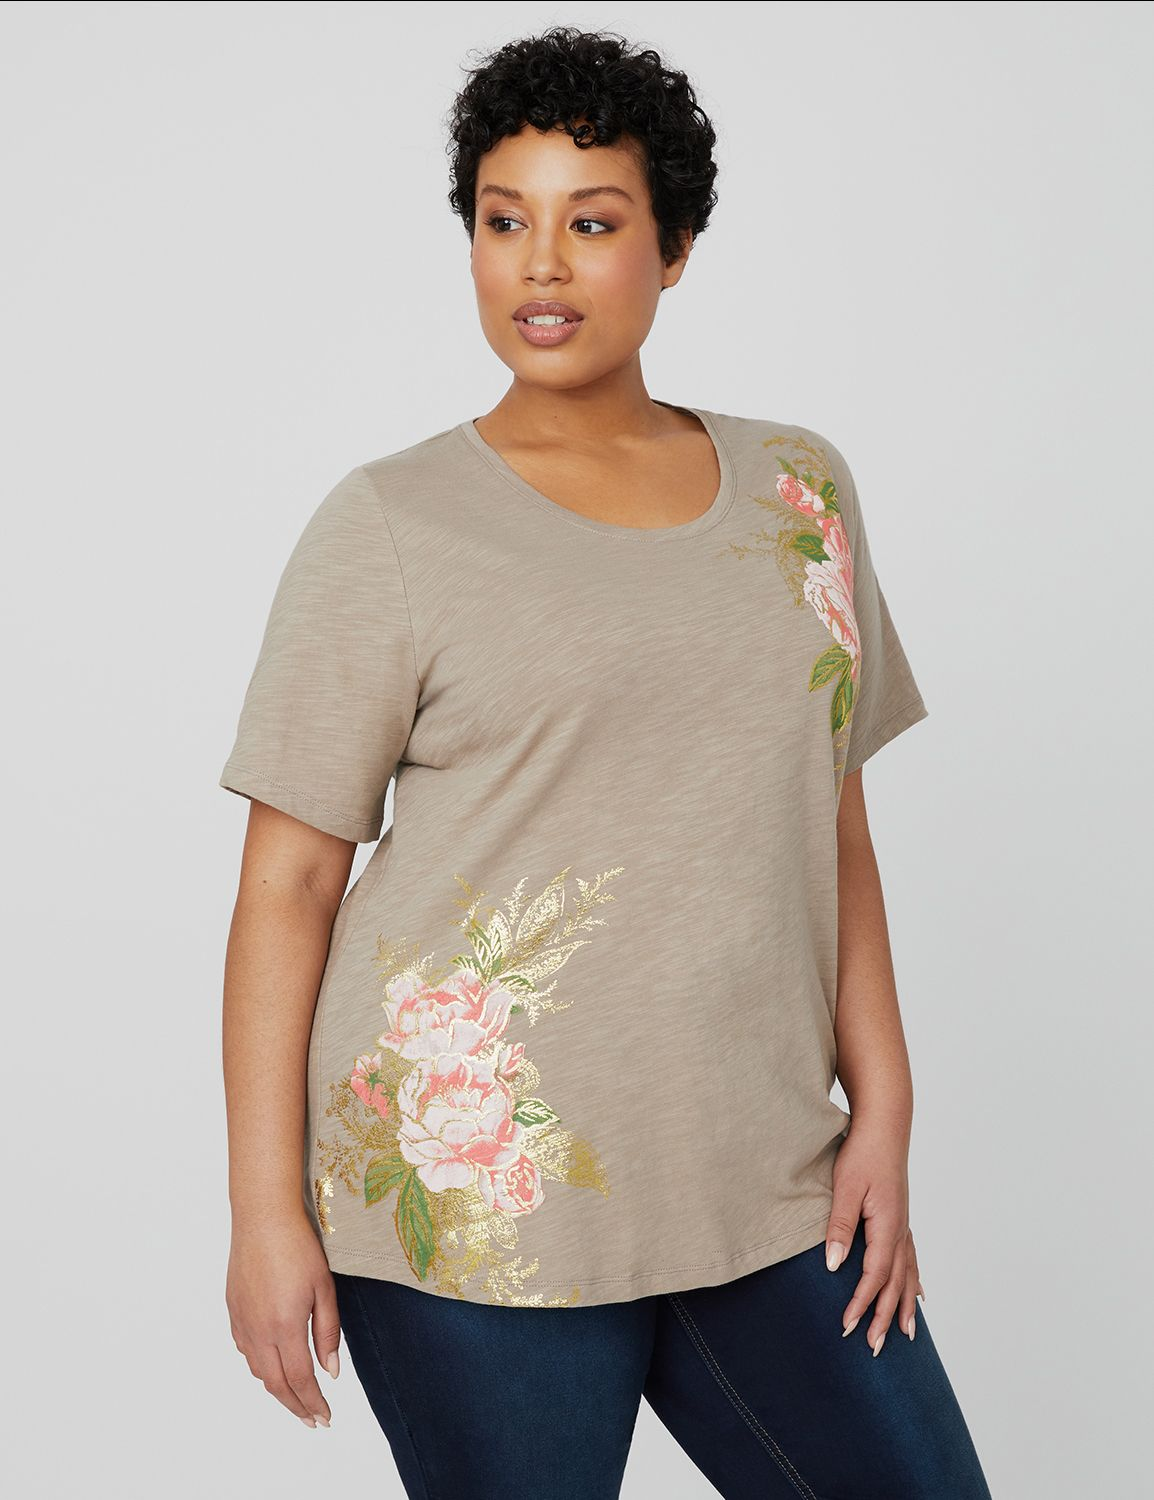 Tranquil Floral Tee 1088365 FLORAL SCREEN MP-300105280